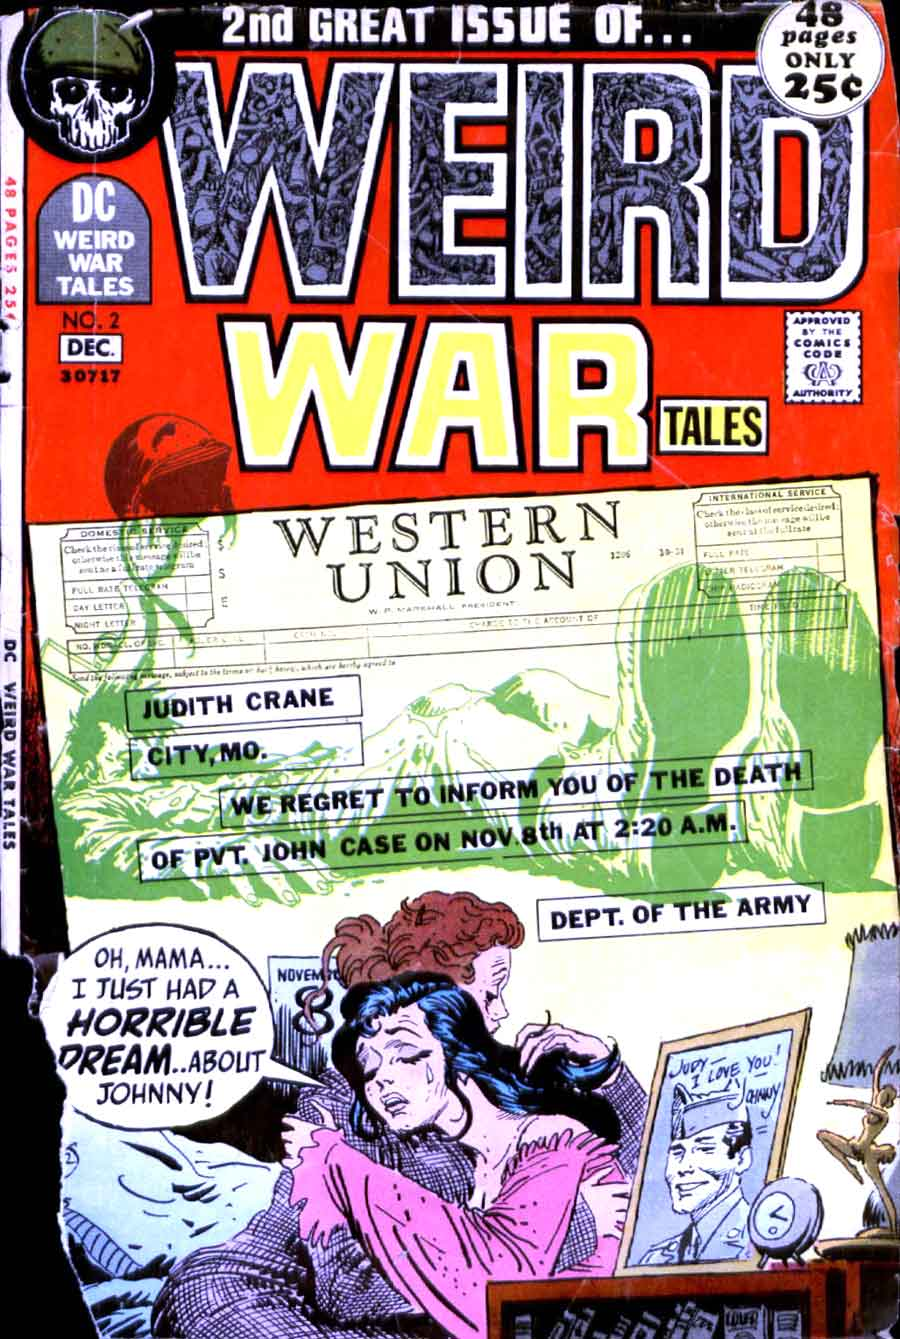 Weird War Tales v1 # 2dc bronze age comic book cover art by Joe Kubert